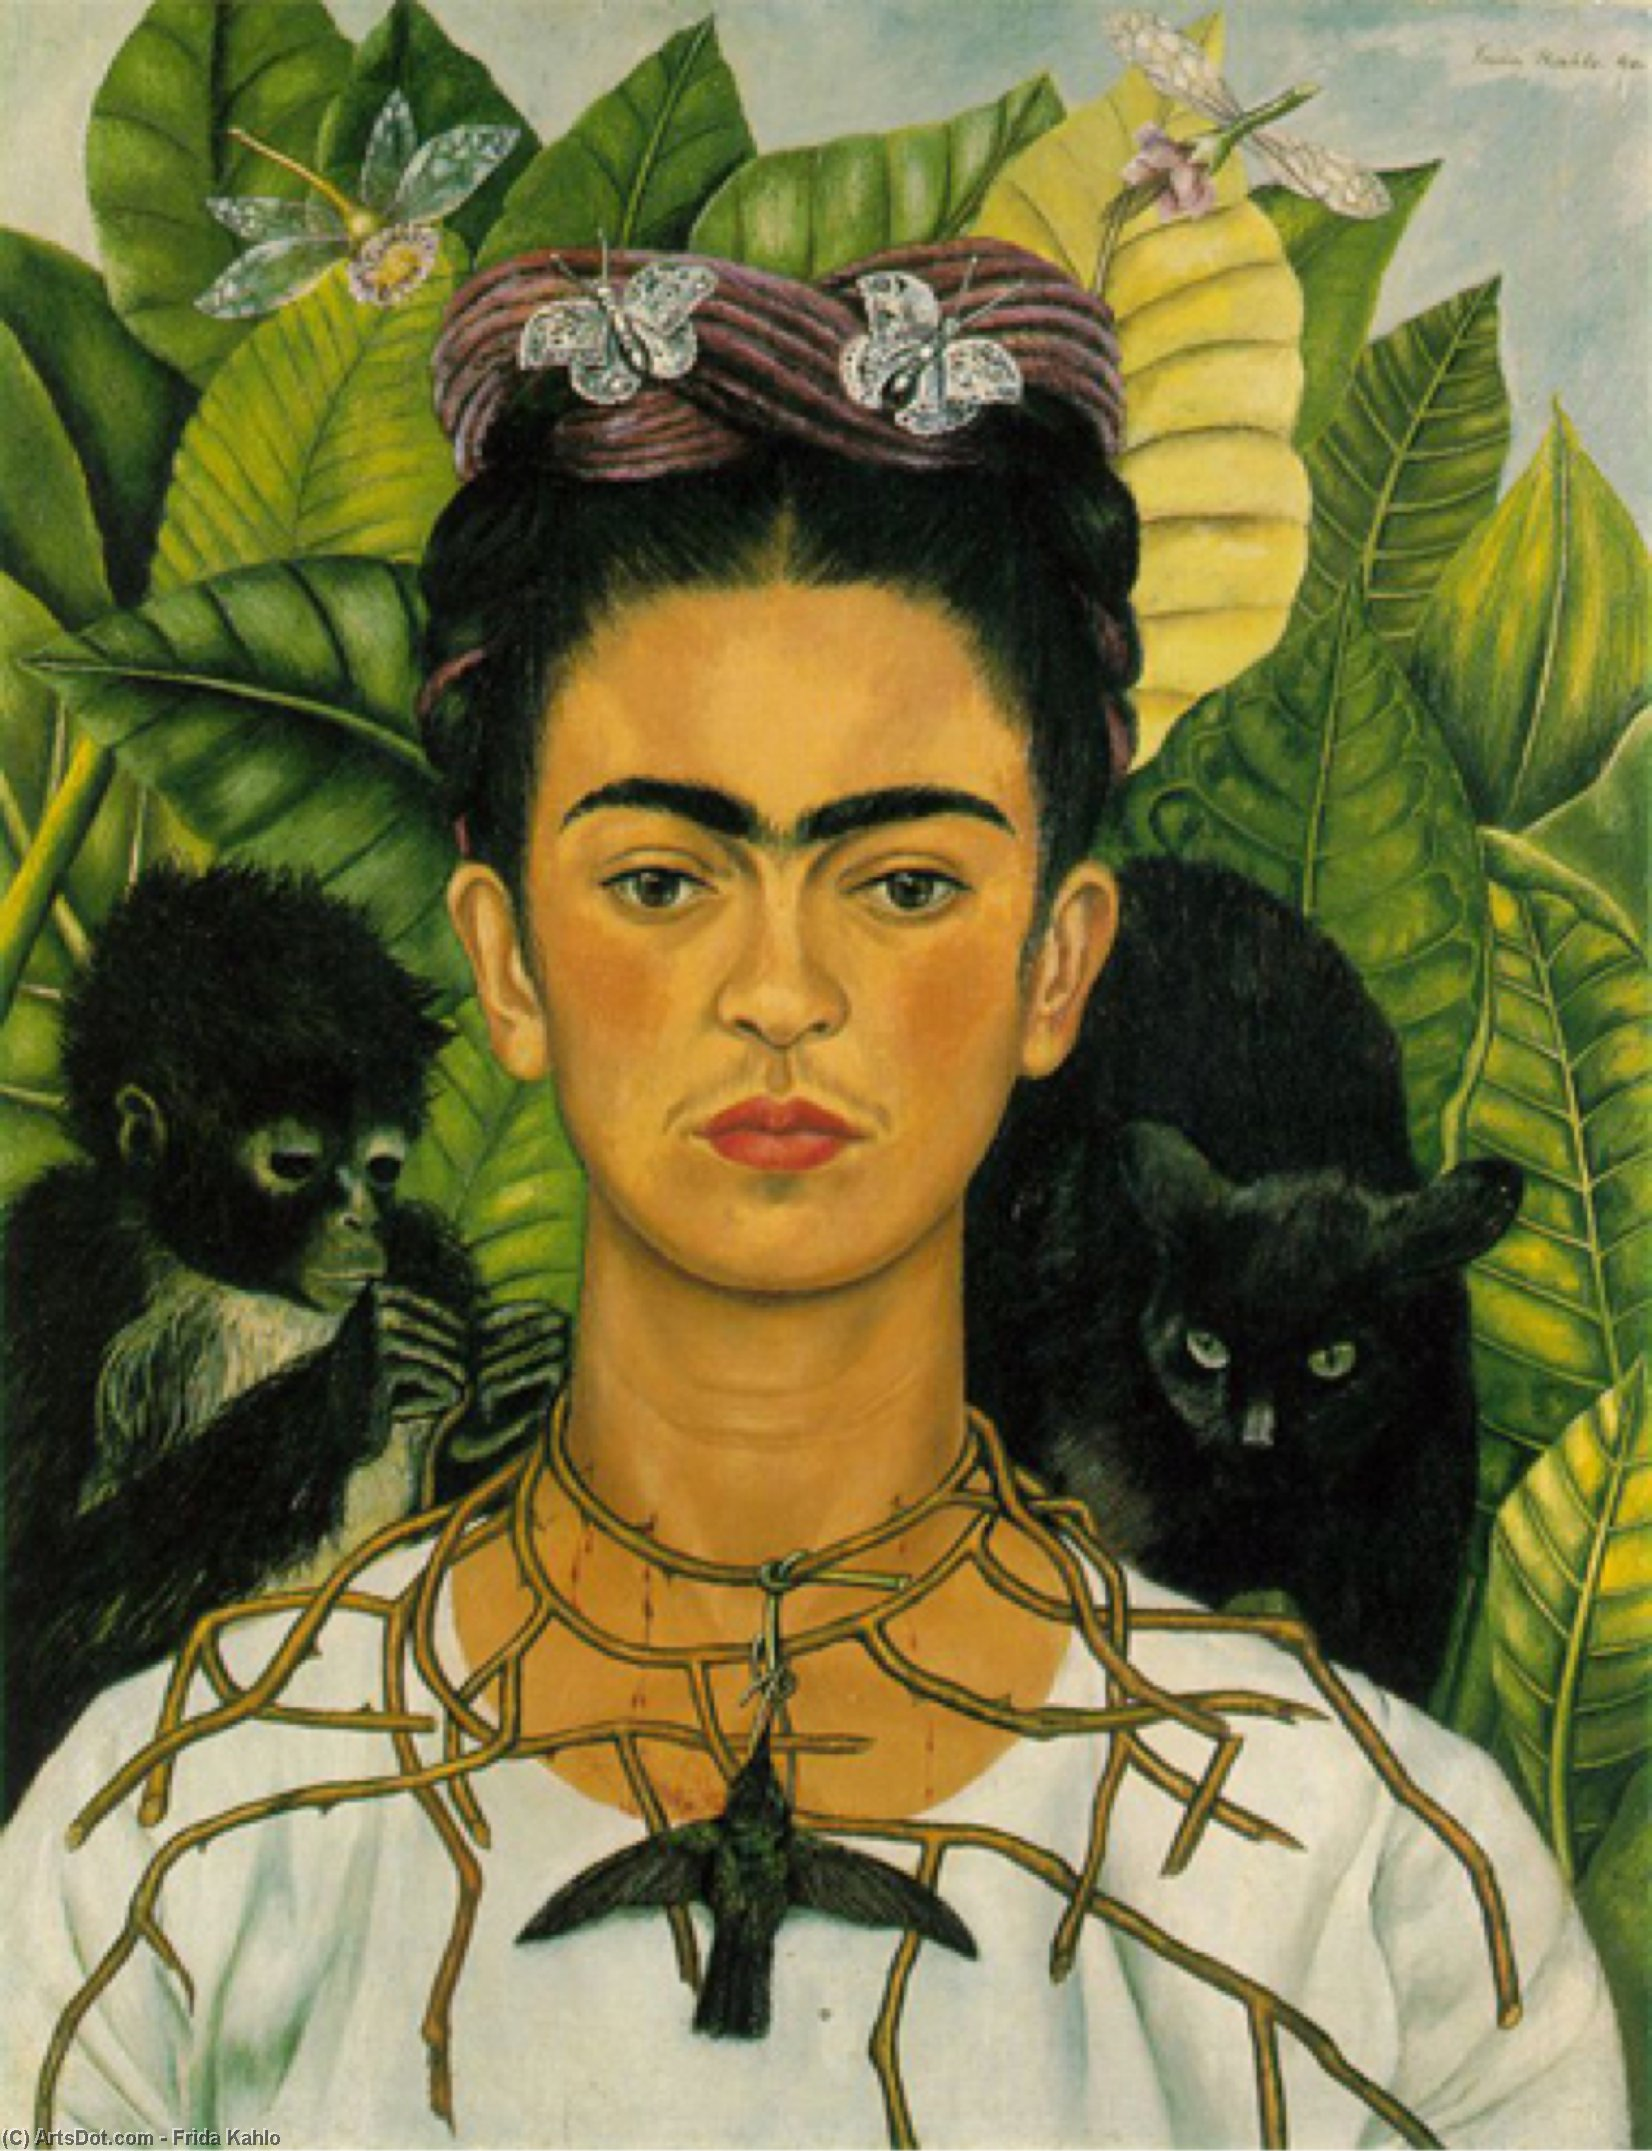 autoritratto di Frida Kahlo (1907-1954, Mexico)